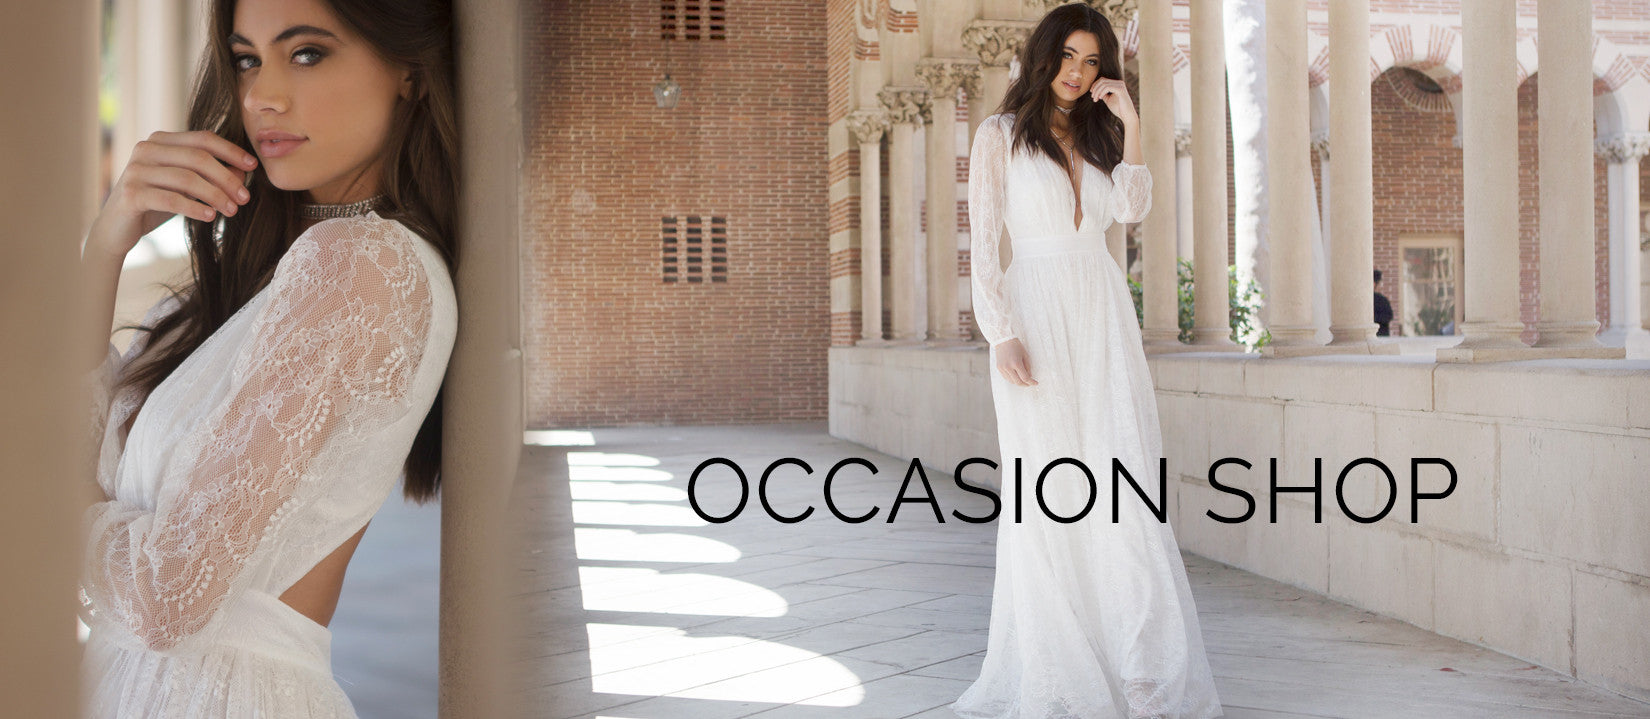 The Occasion Shop - ANGL